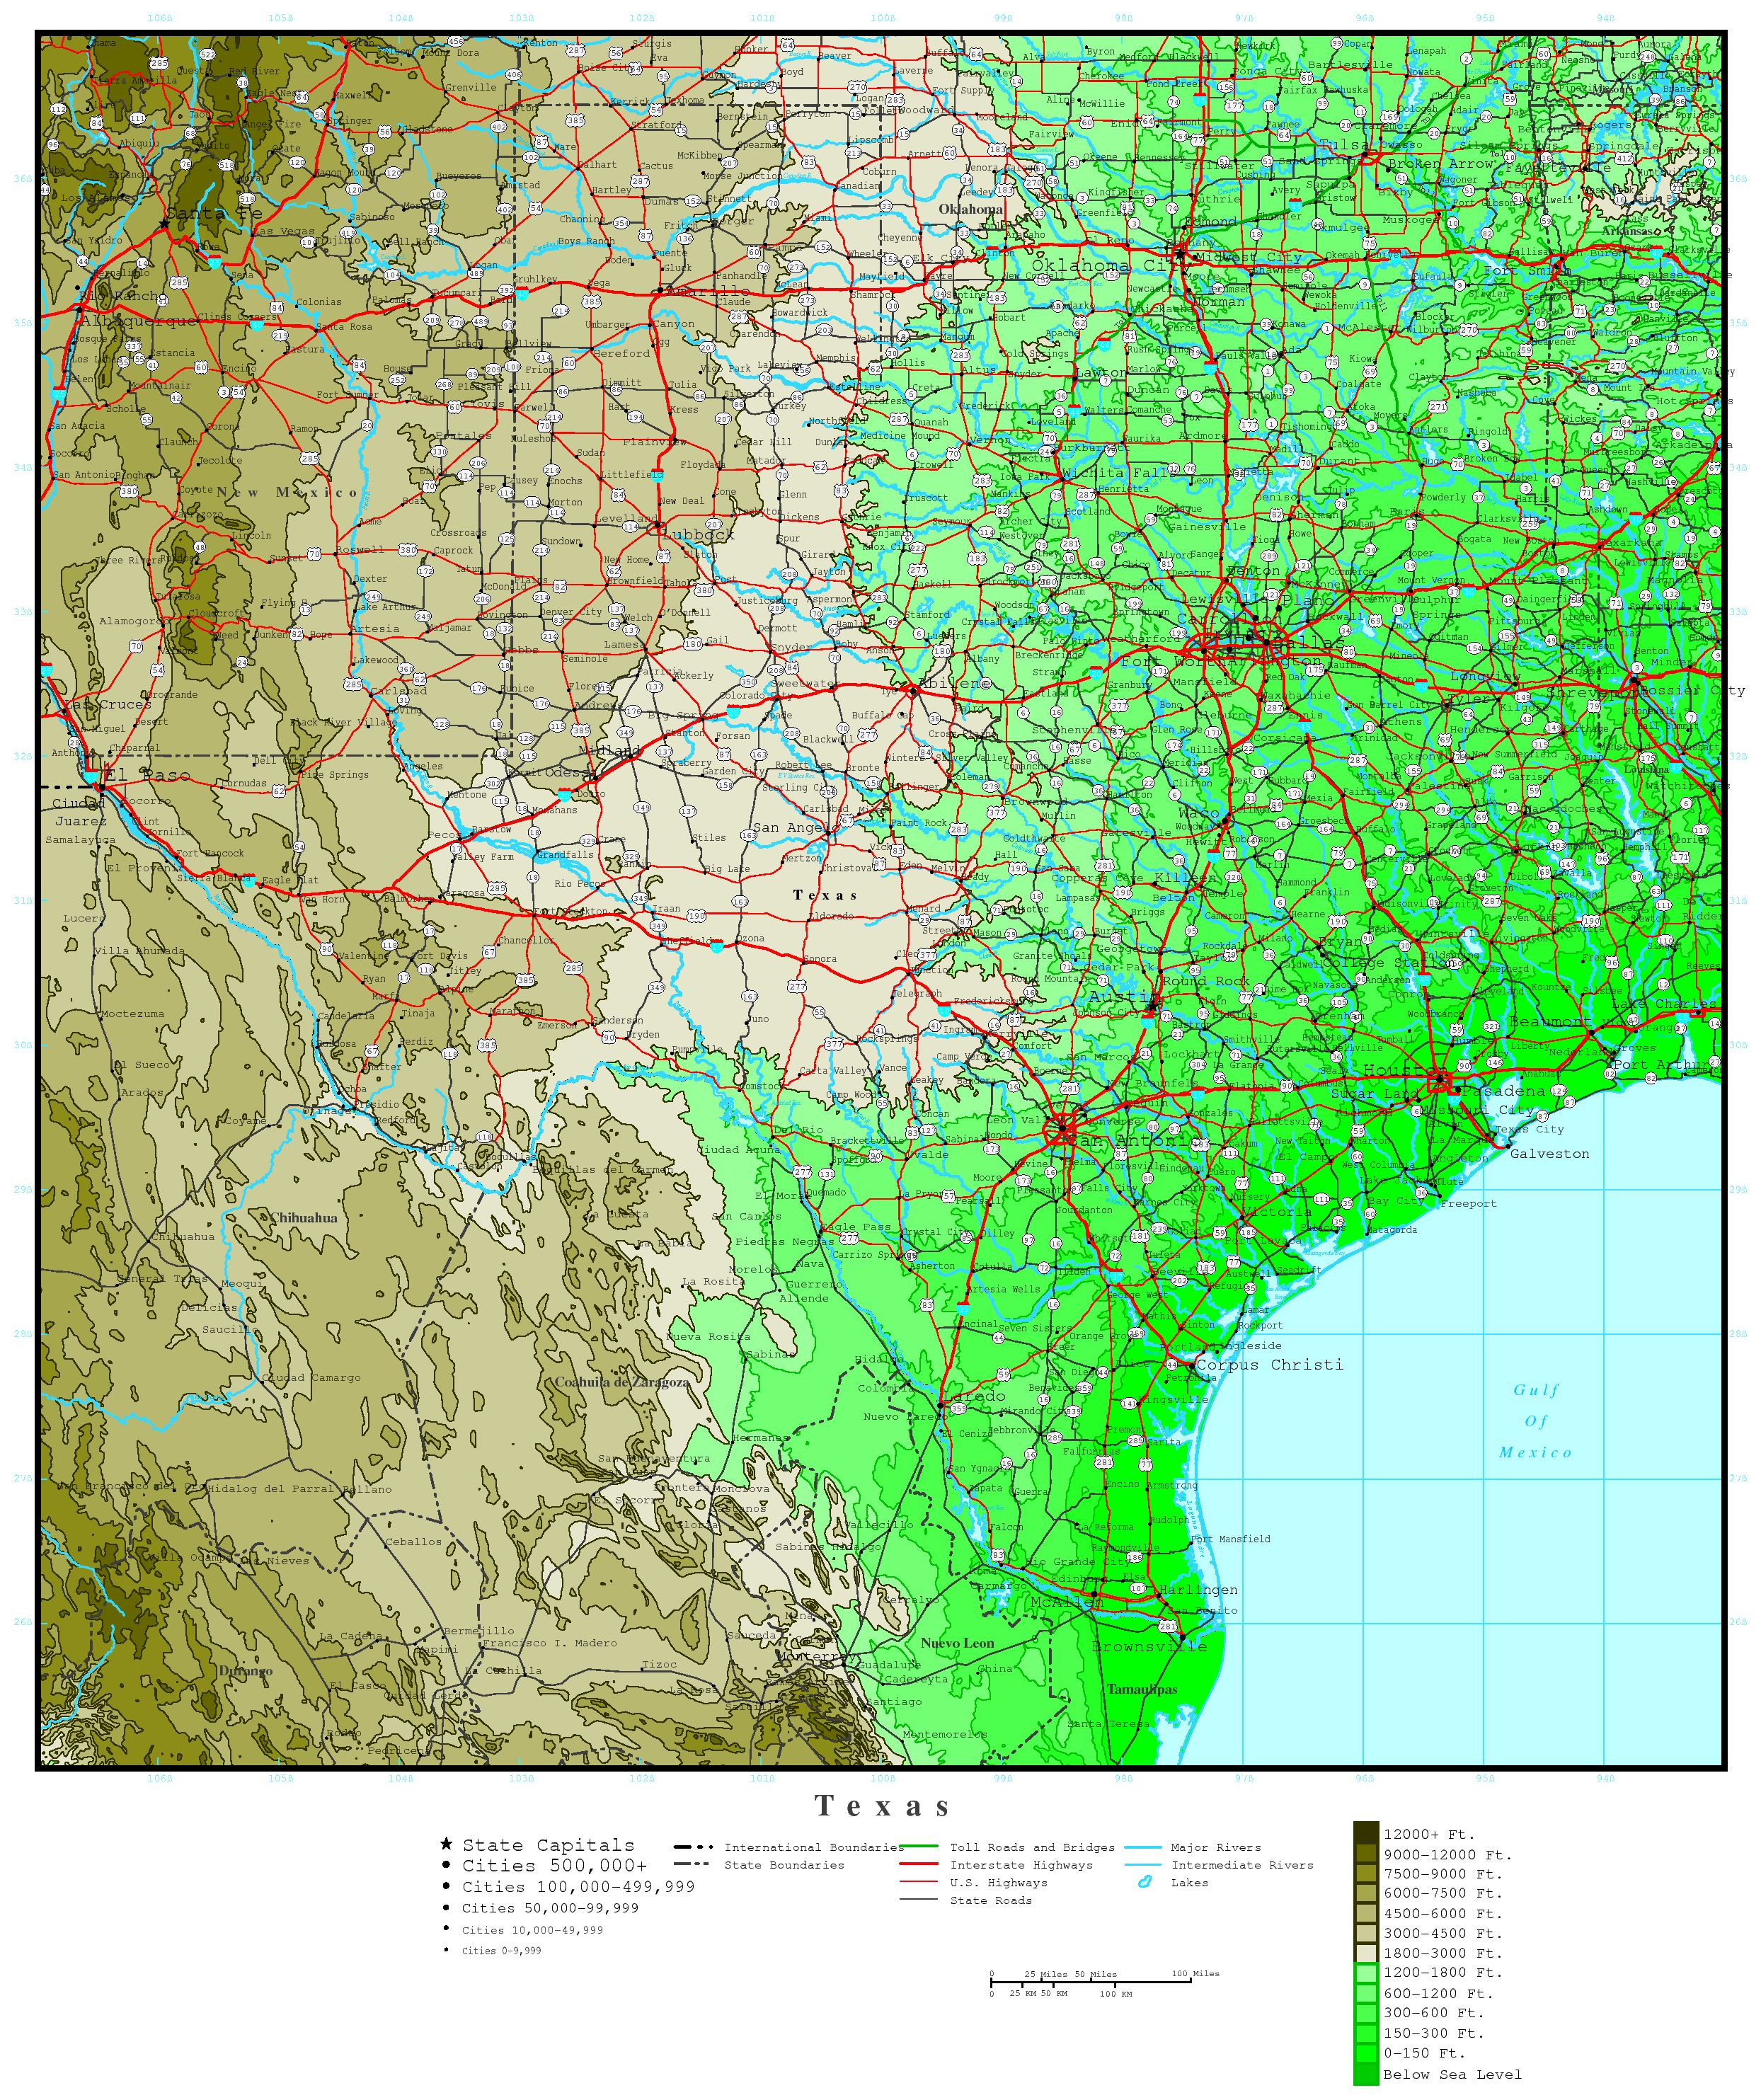 Texas Elevation Map - Elevation map of us